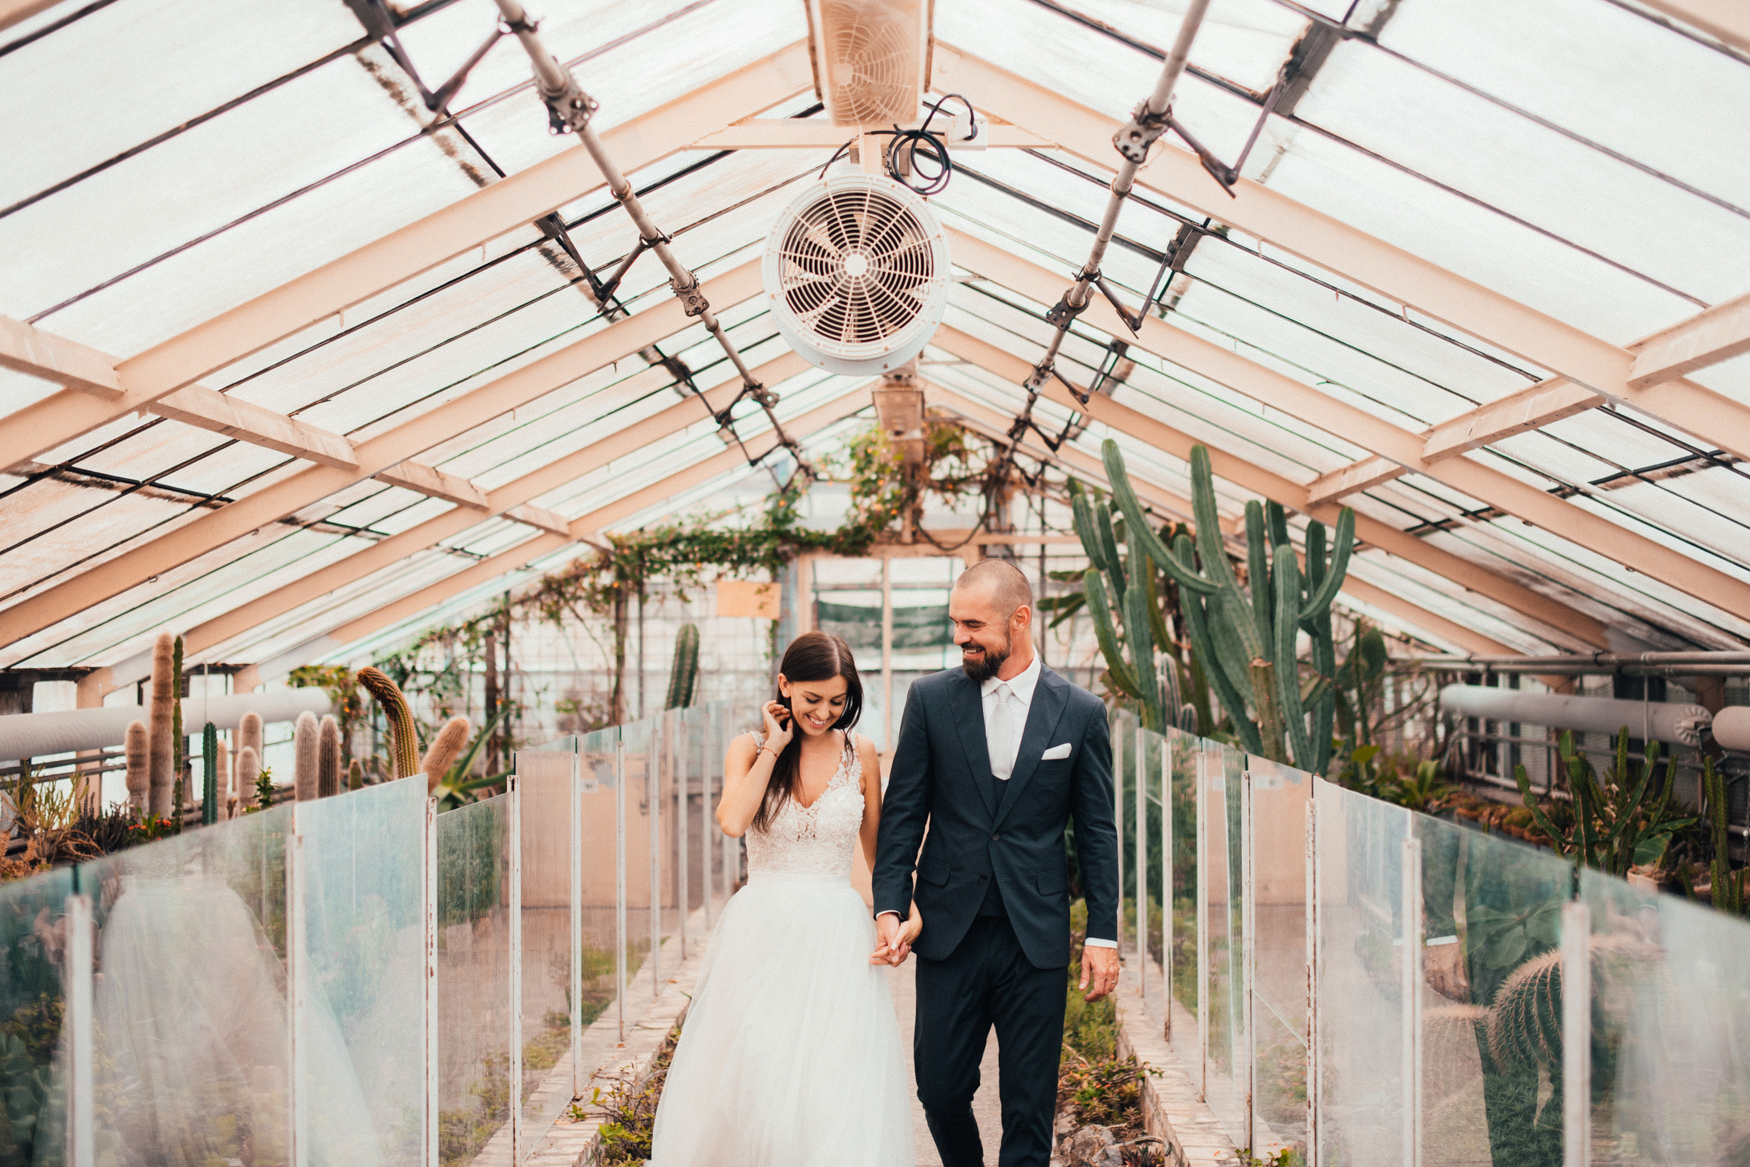 bestof2017_100 glasshouse wedding portraits.jpg